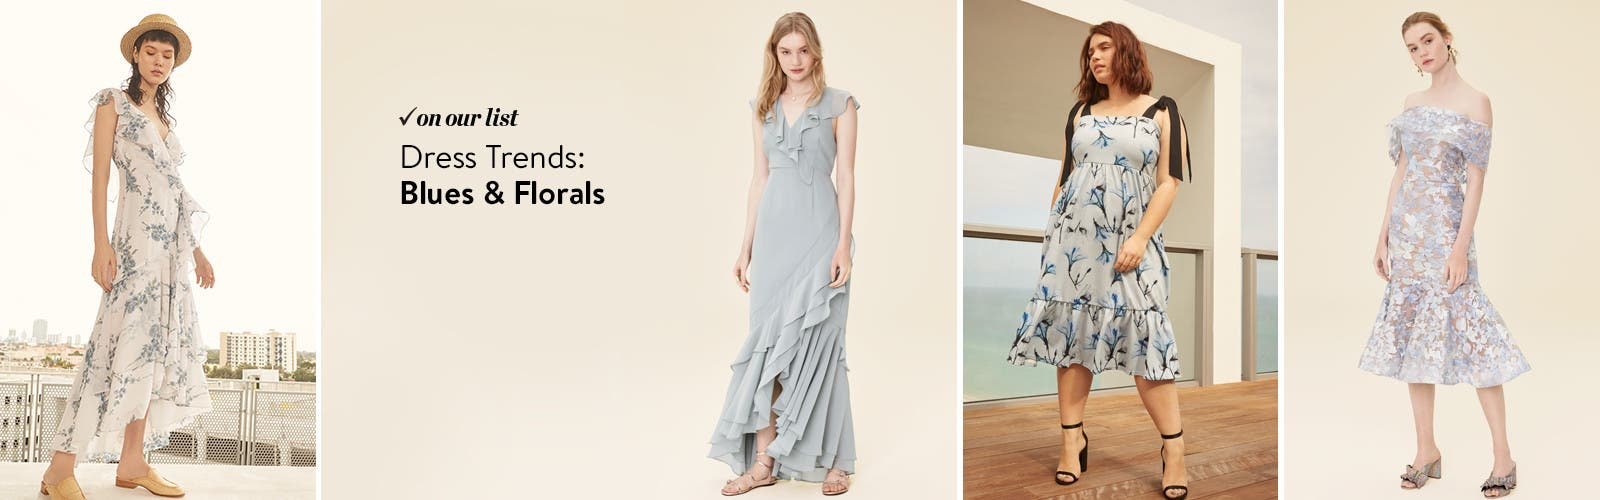 Dress trends: blues and florals.